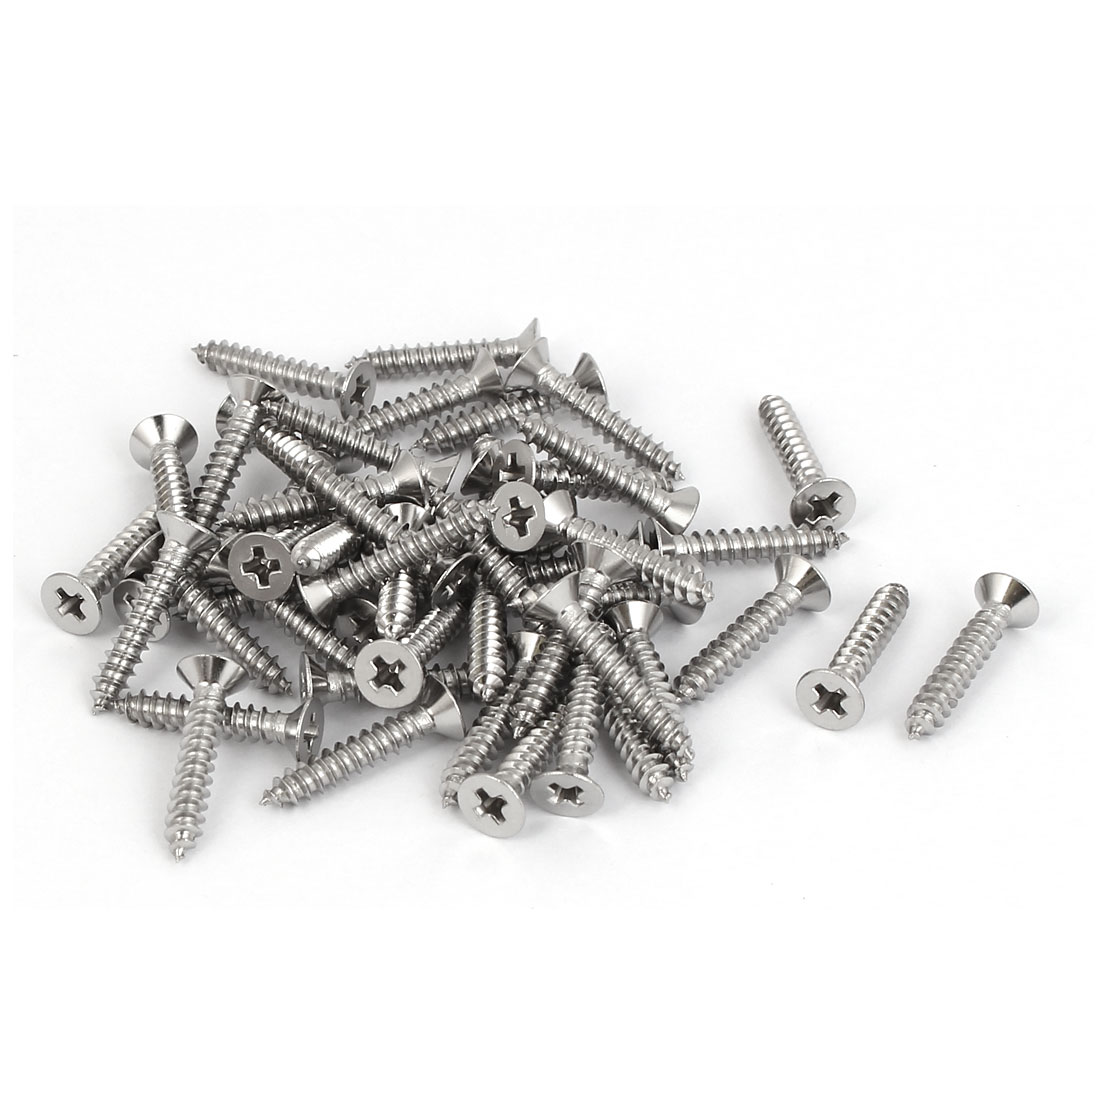 50 Pcs M2.9x16mm 316 Stainless Steel Flat Head Phillips Self Tapping Screws